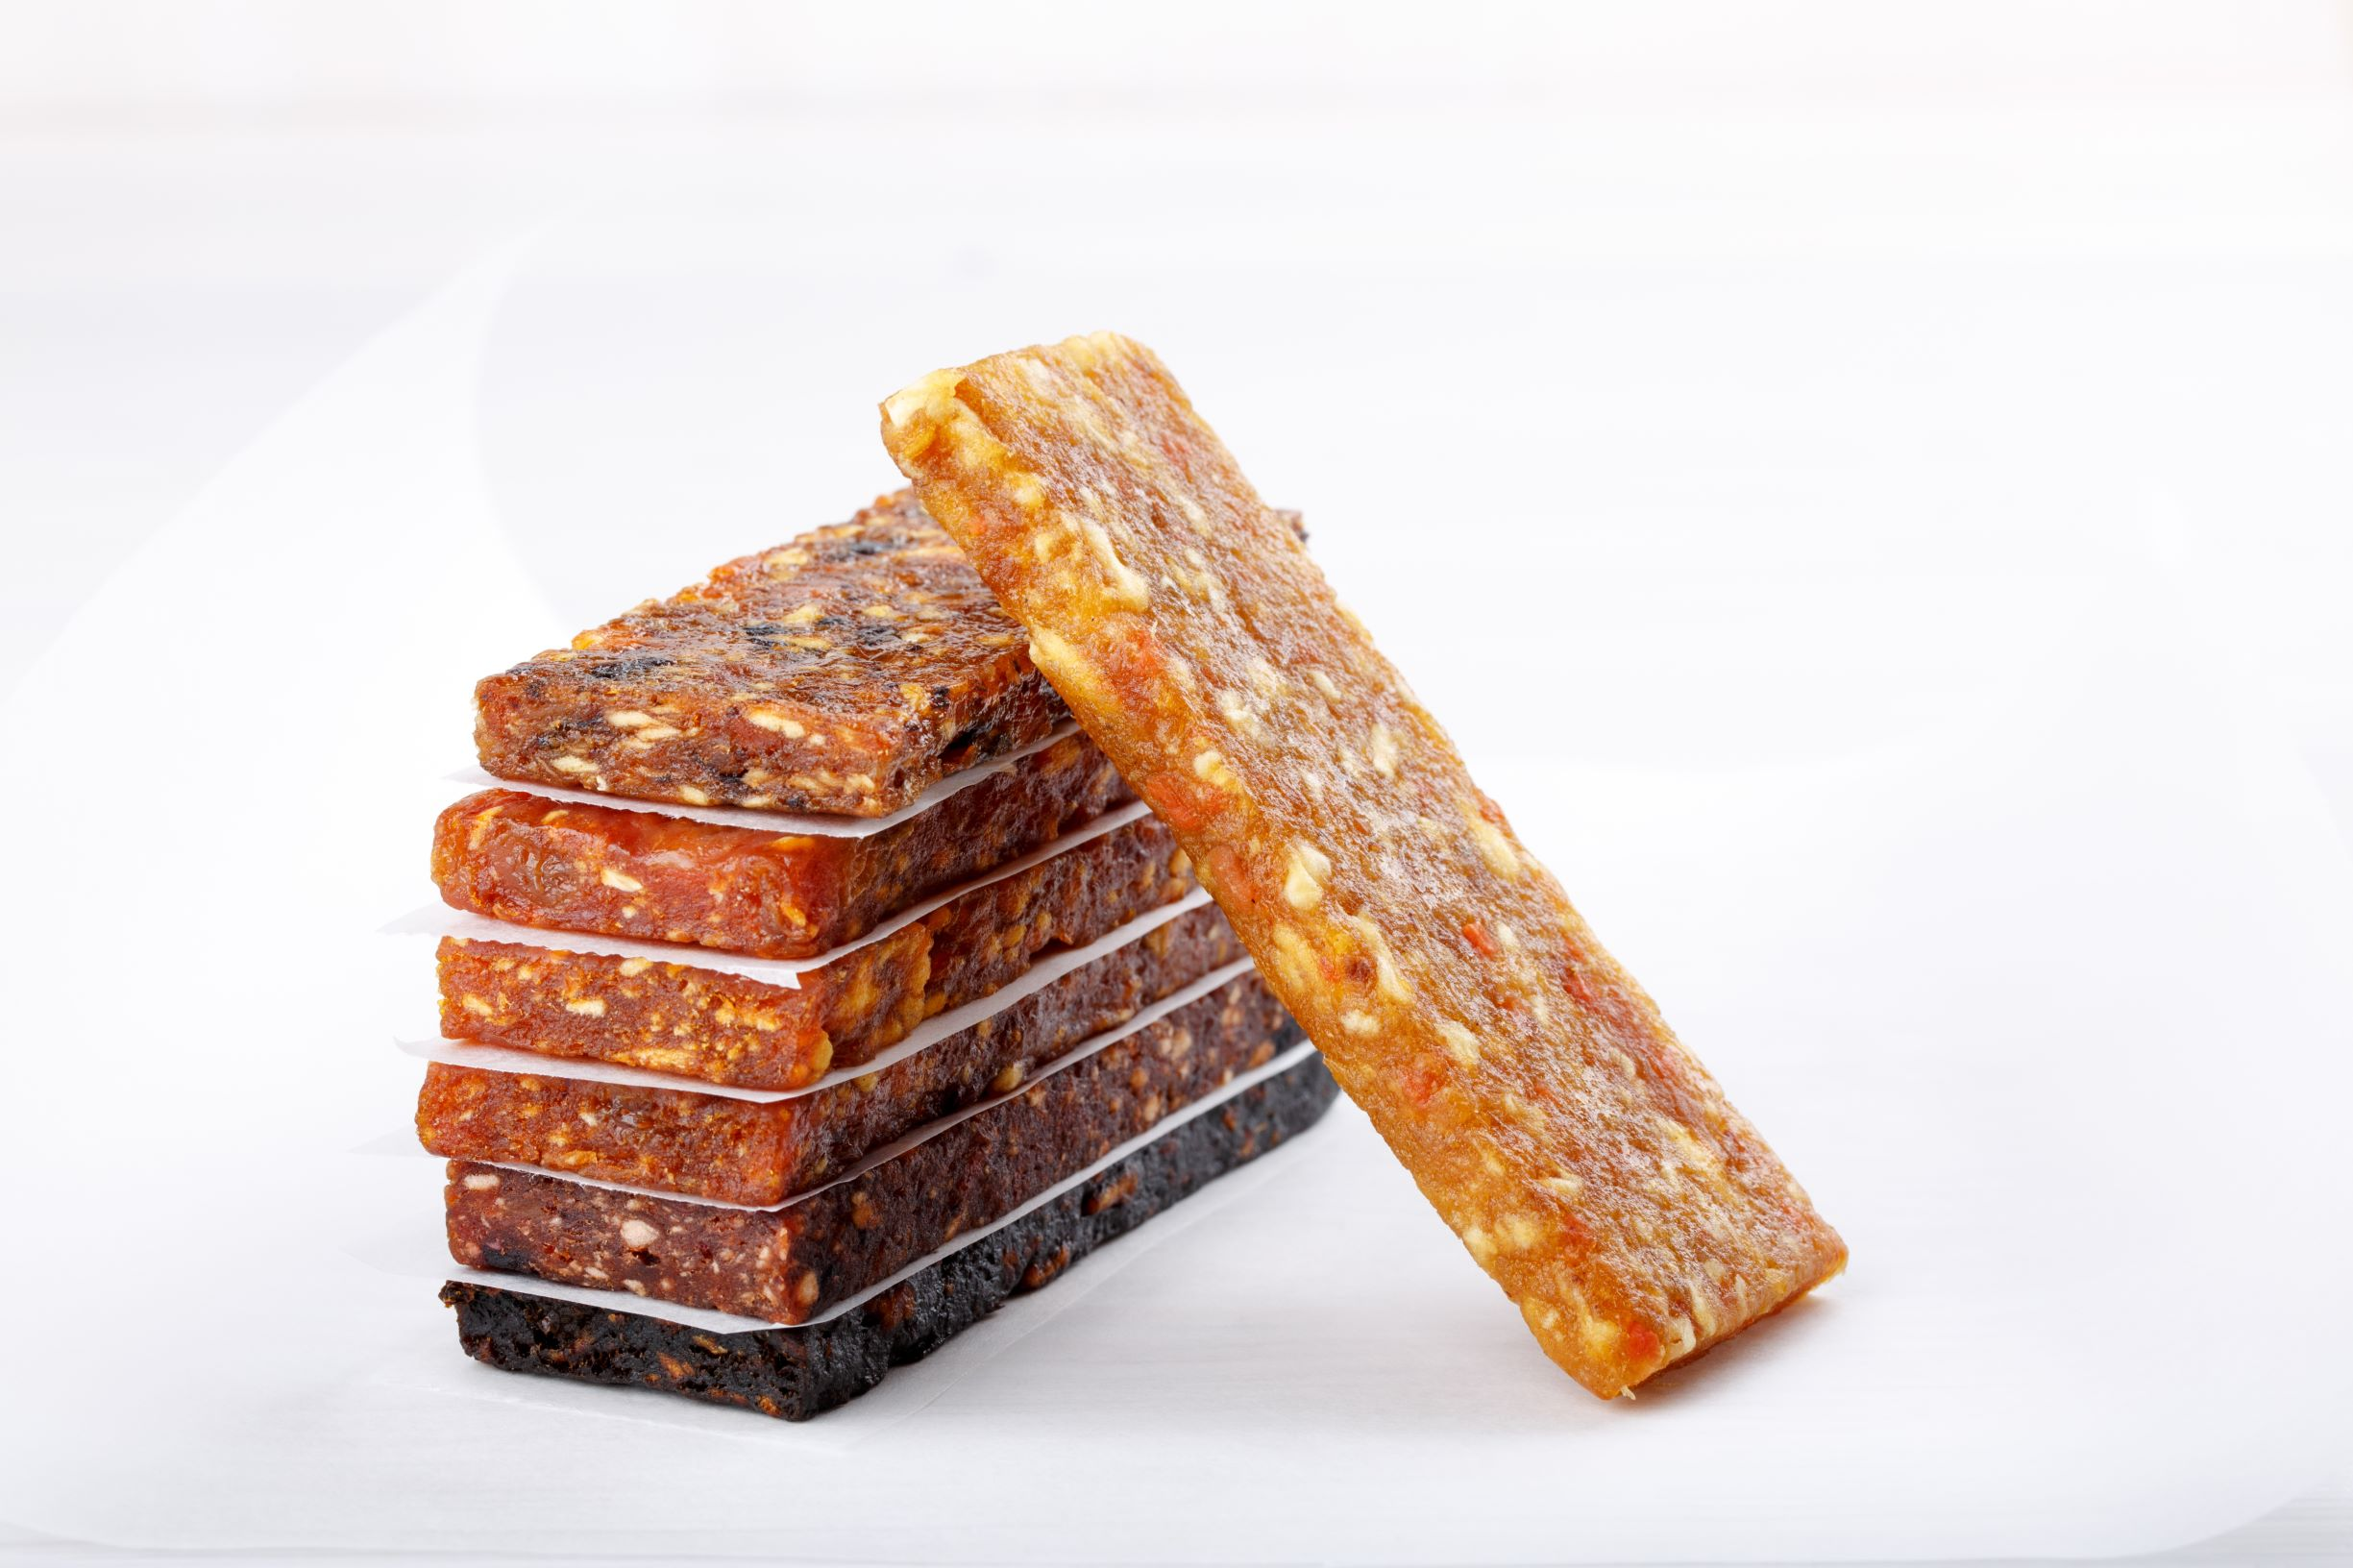 Raw Almond, Nuts and Dried Fruits Energy Bar